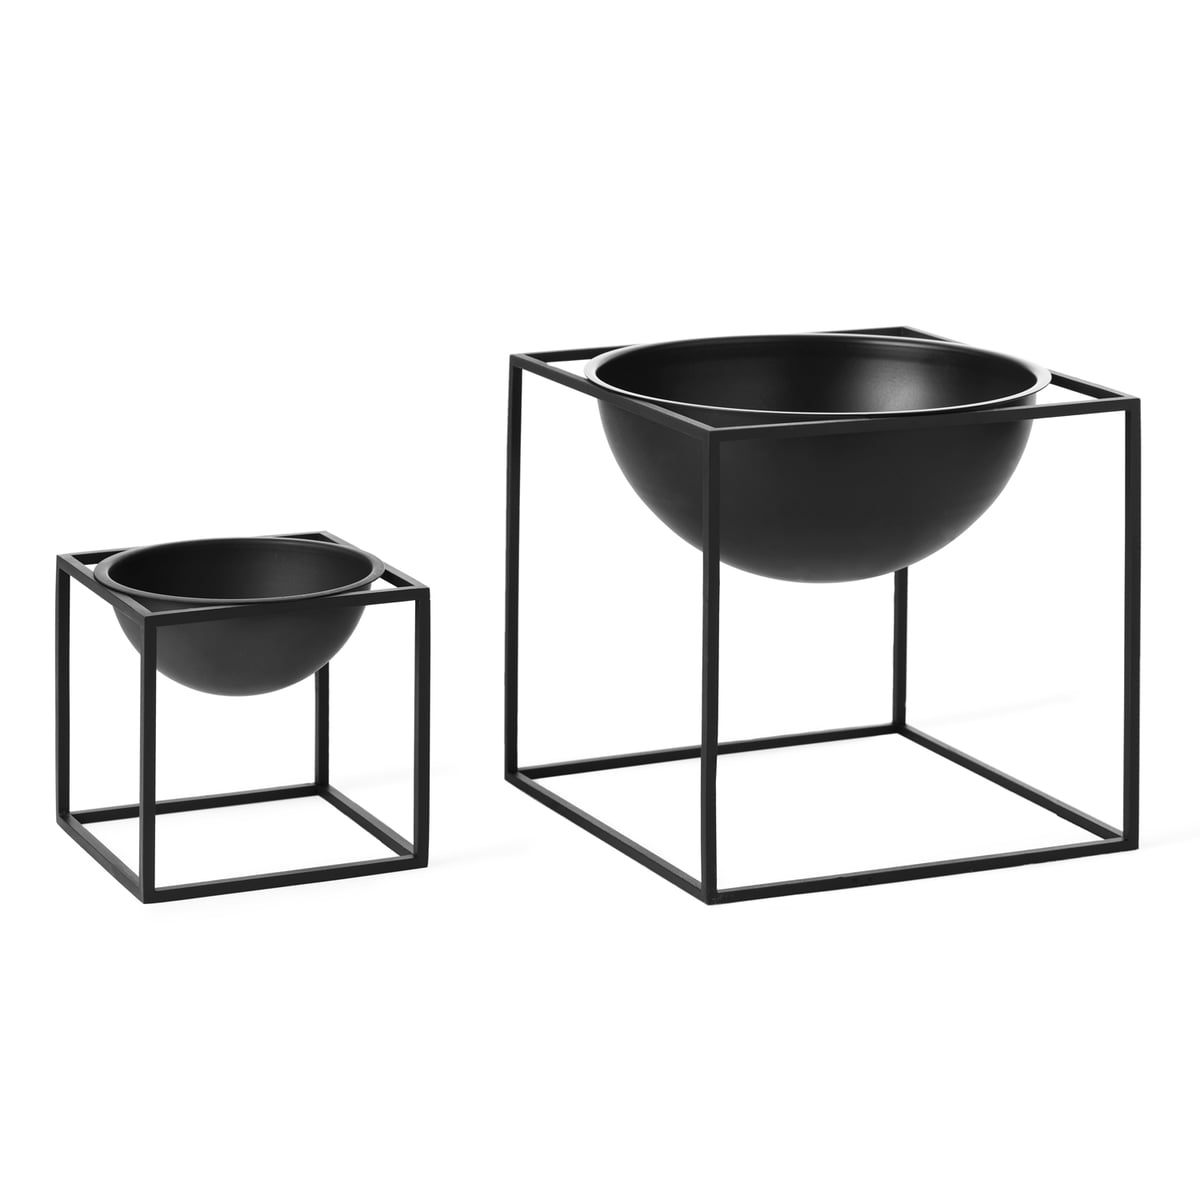 kubus bowl from by lassen at connox. Black Bedroom Furniture Sets. Home Design Ideas